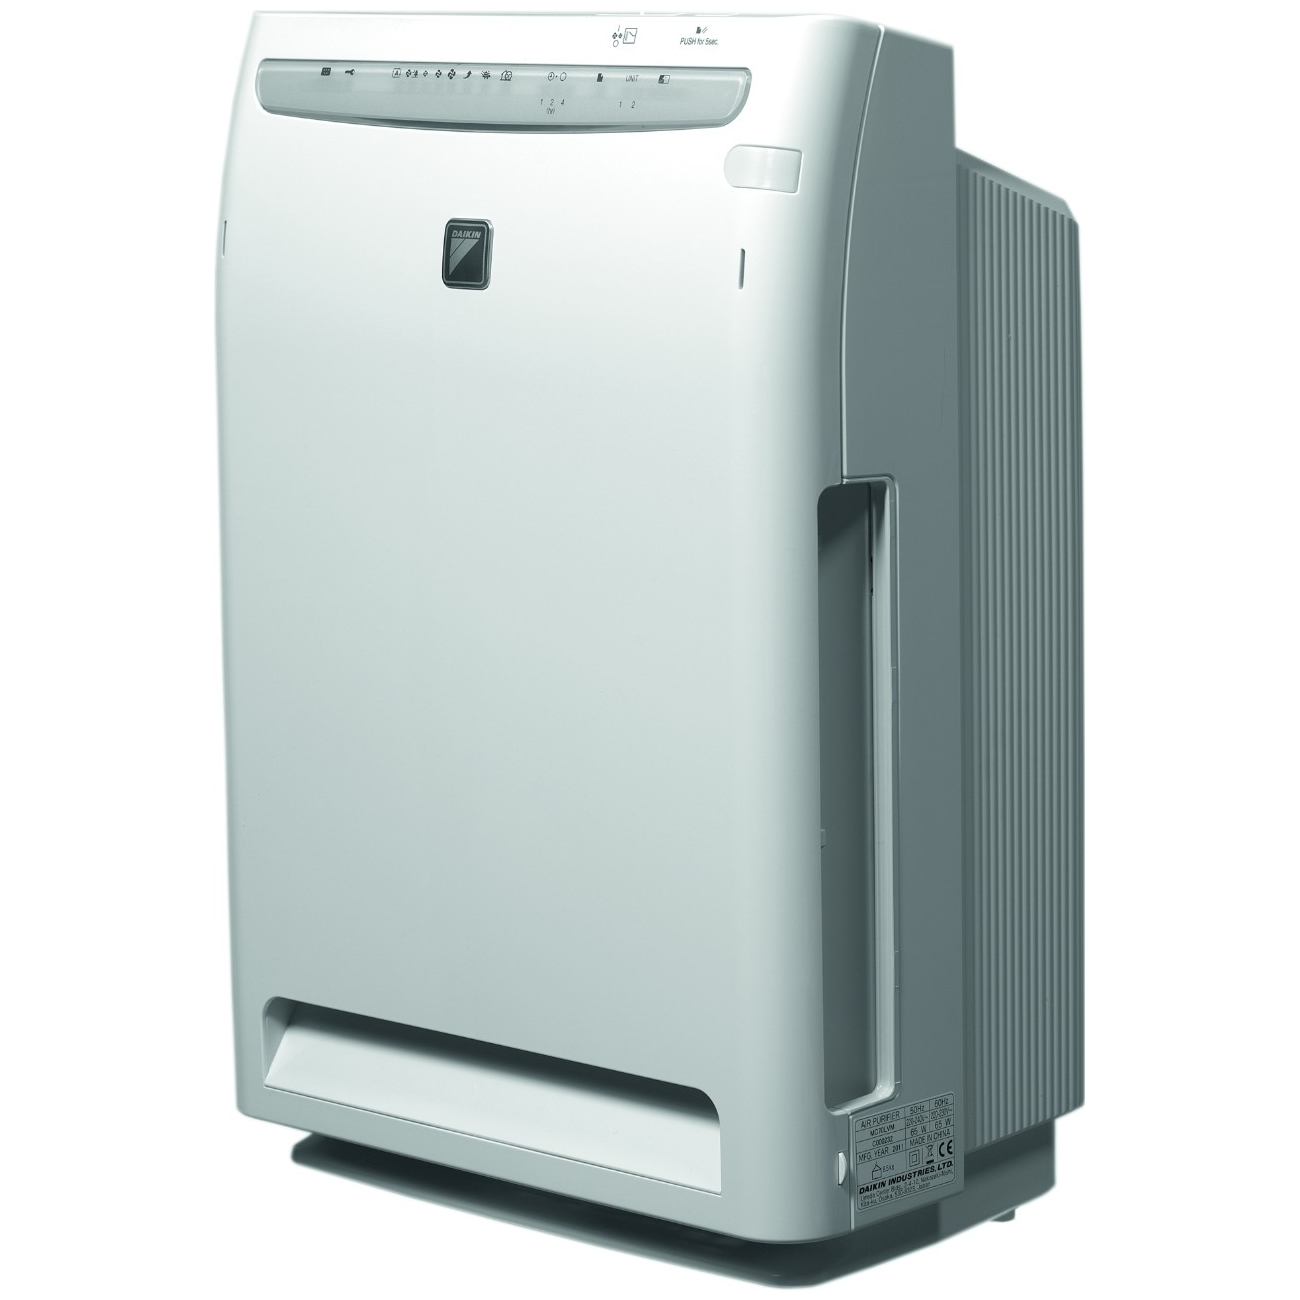 Purificator de aer Daikin MC70L